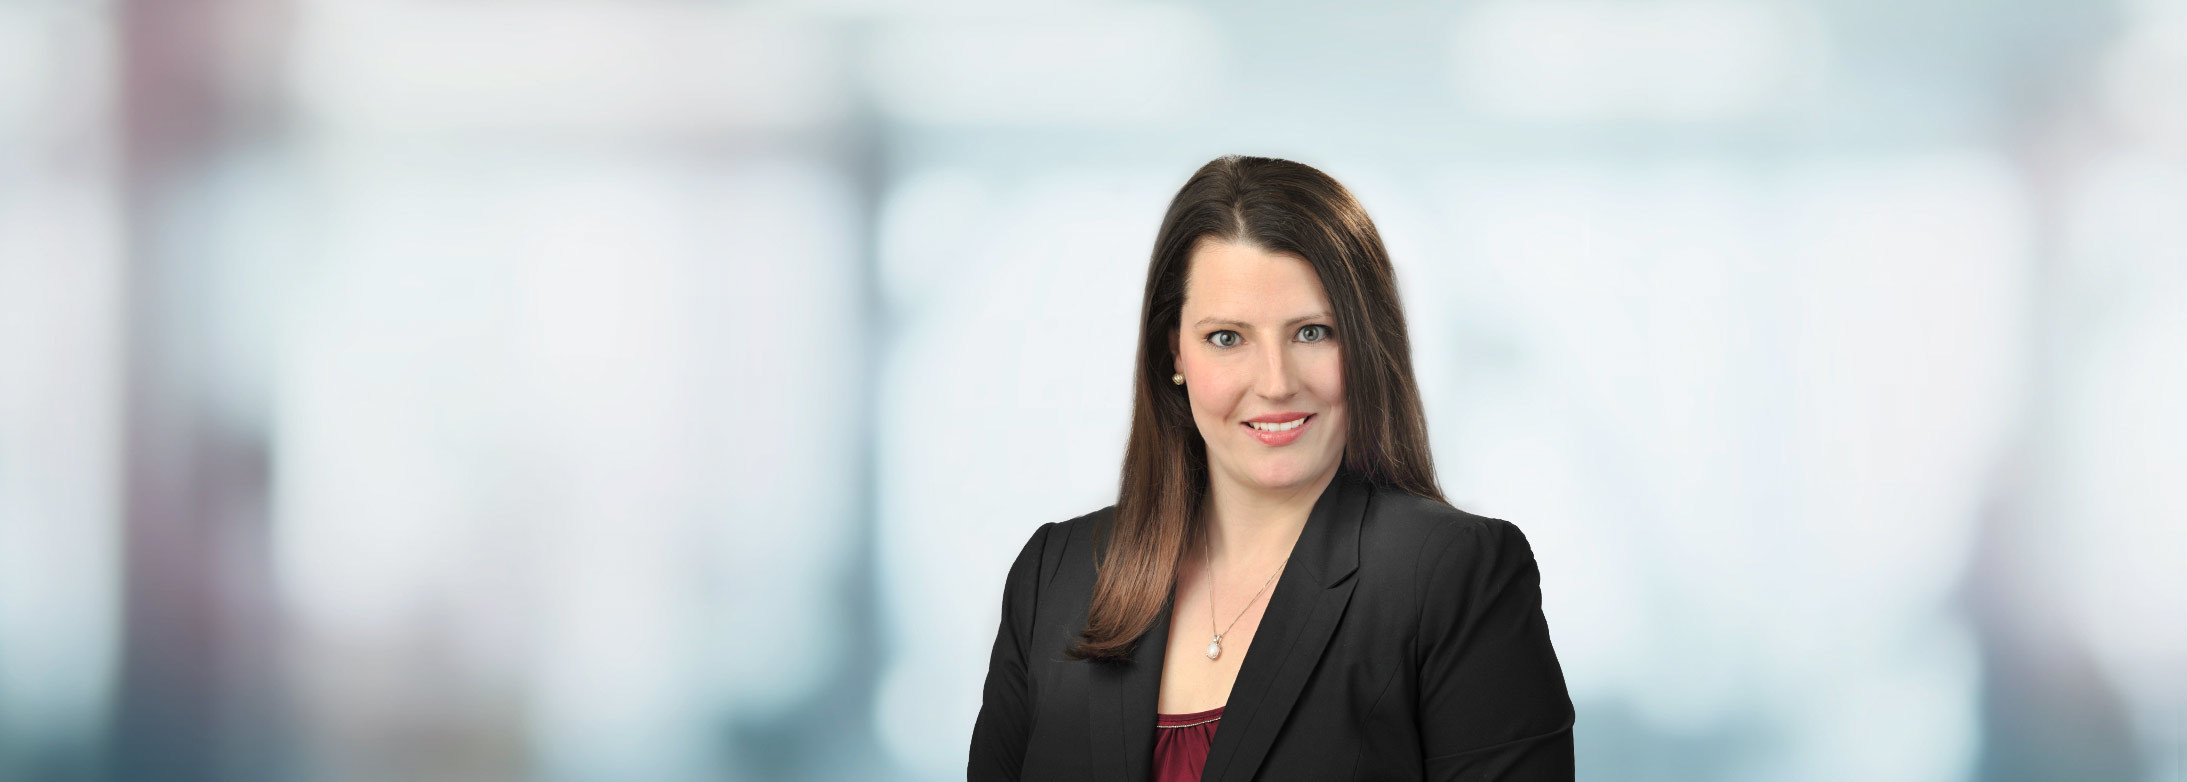 Leah Parker, Swift, Currie, McGhee & Hiers, LLP Photo